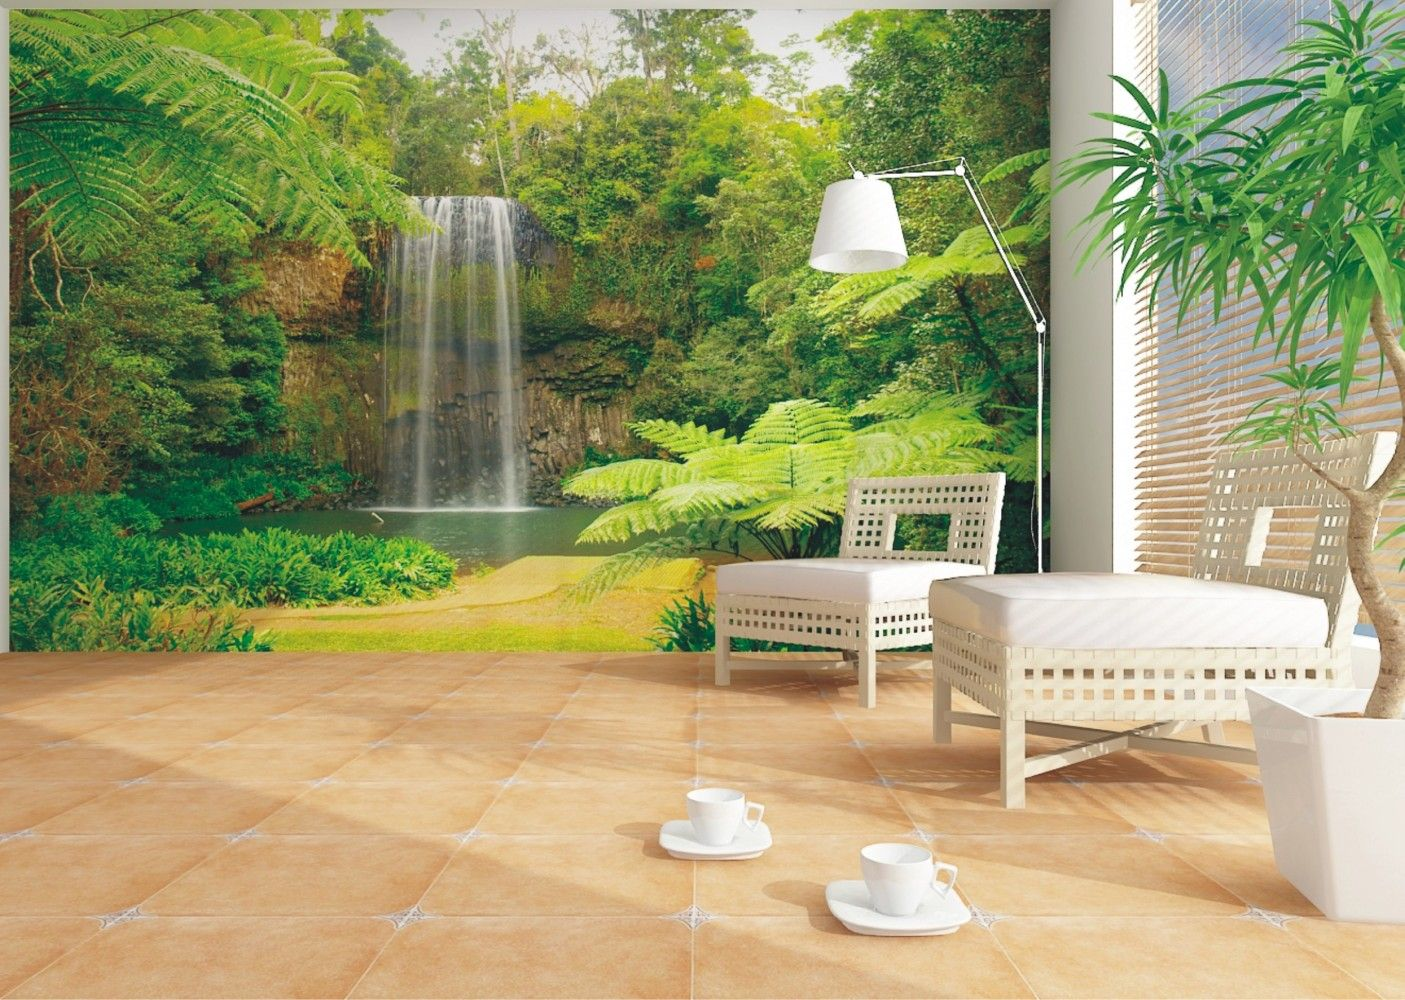 wall murals nature this wallpaper photo brings the beautiful look wall murals nature this wallpaper photo brings the beautiful look of natural scenery into any